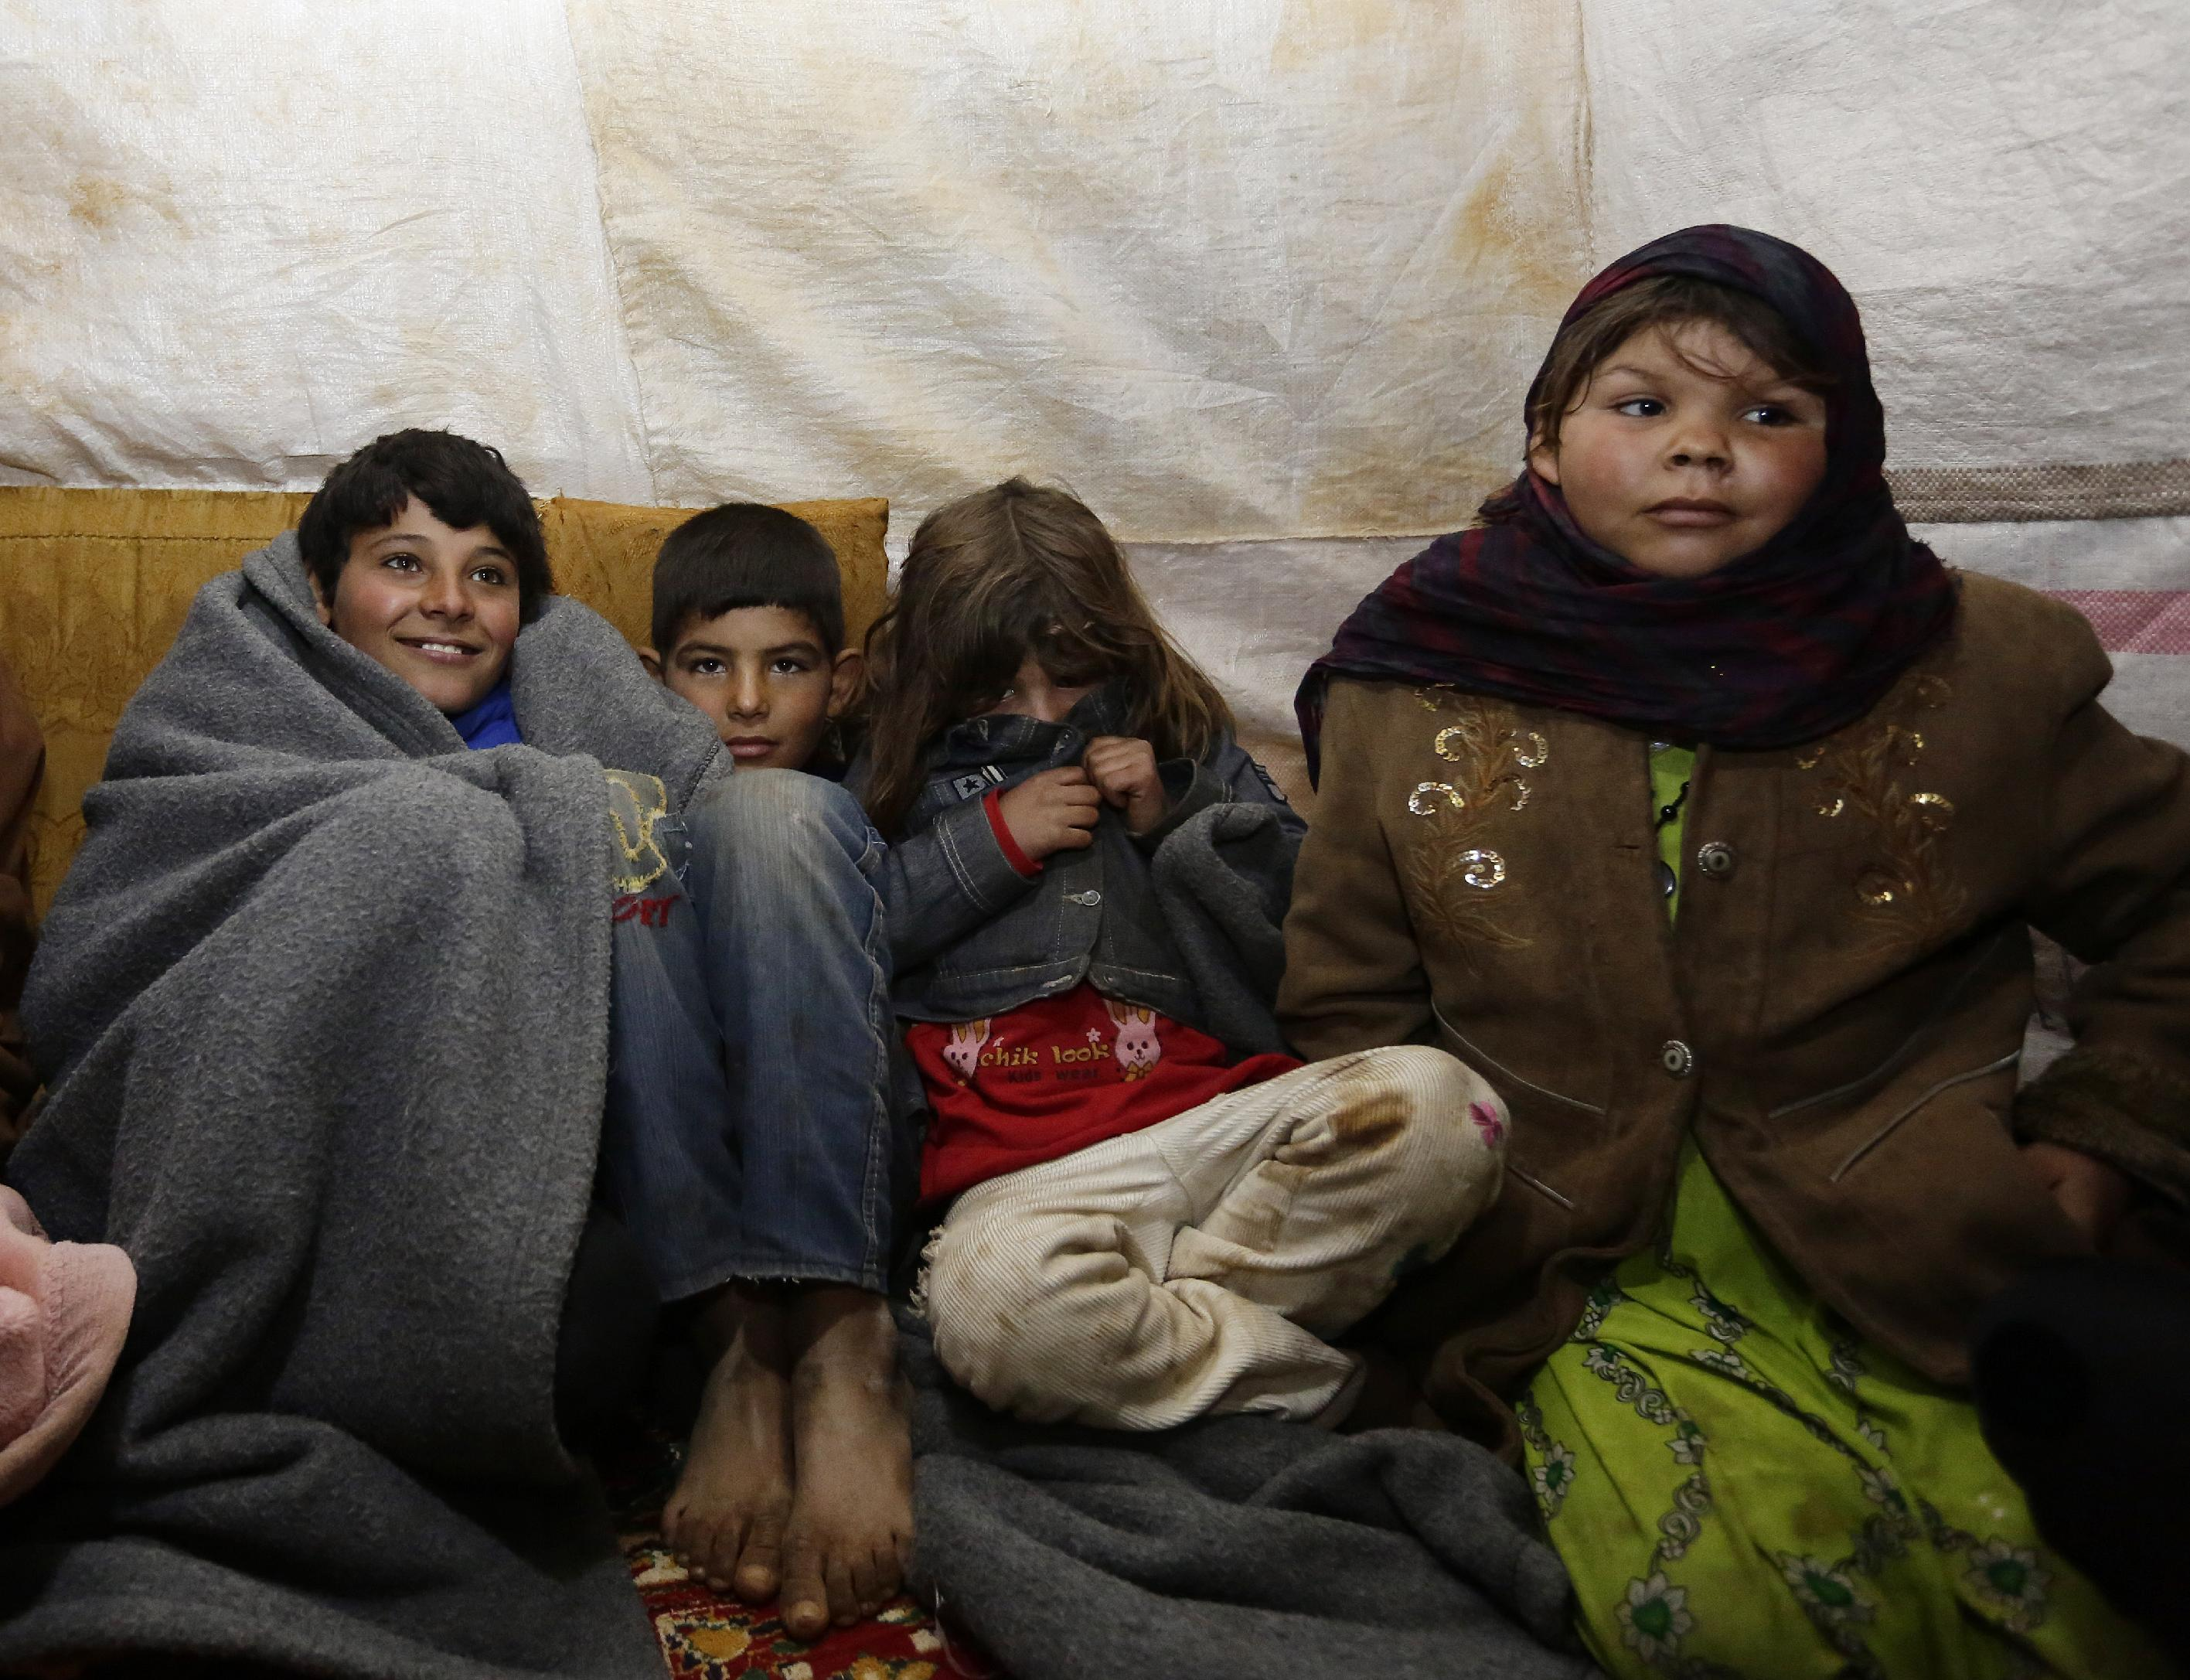 Syria refugees suffer bitter cold of Lebanon winter